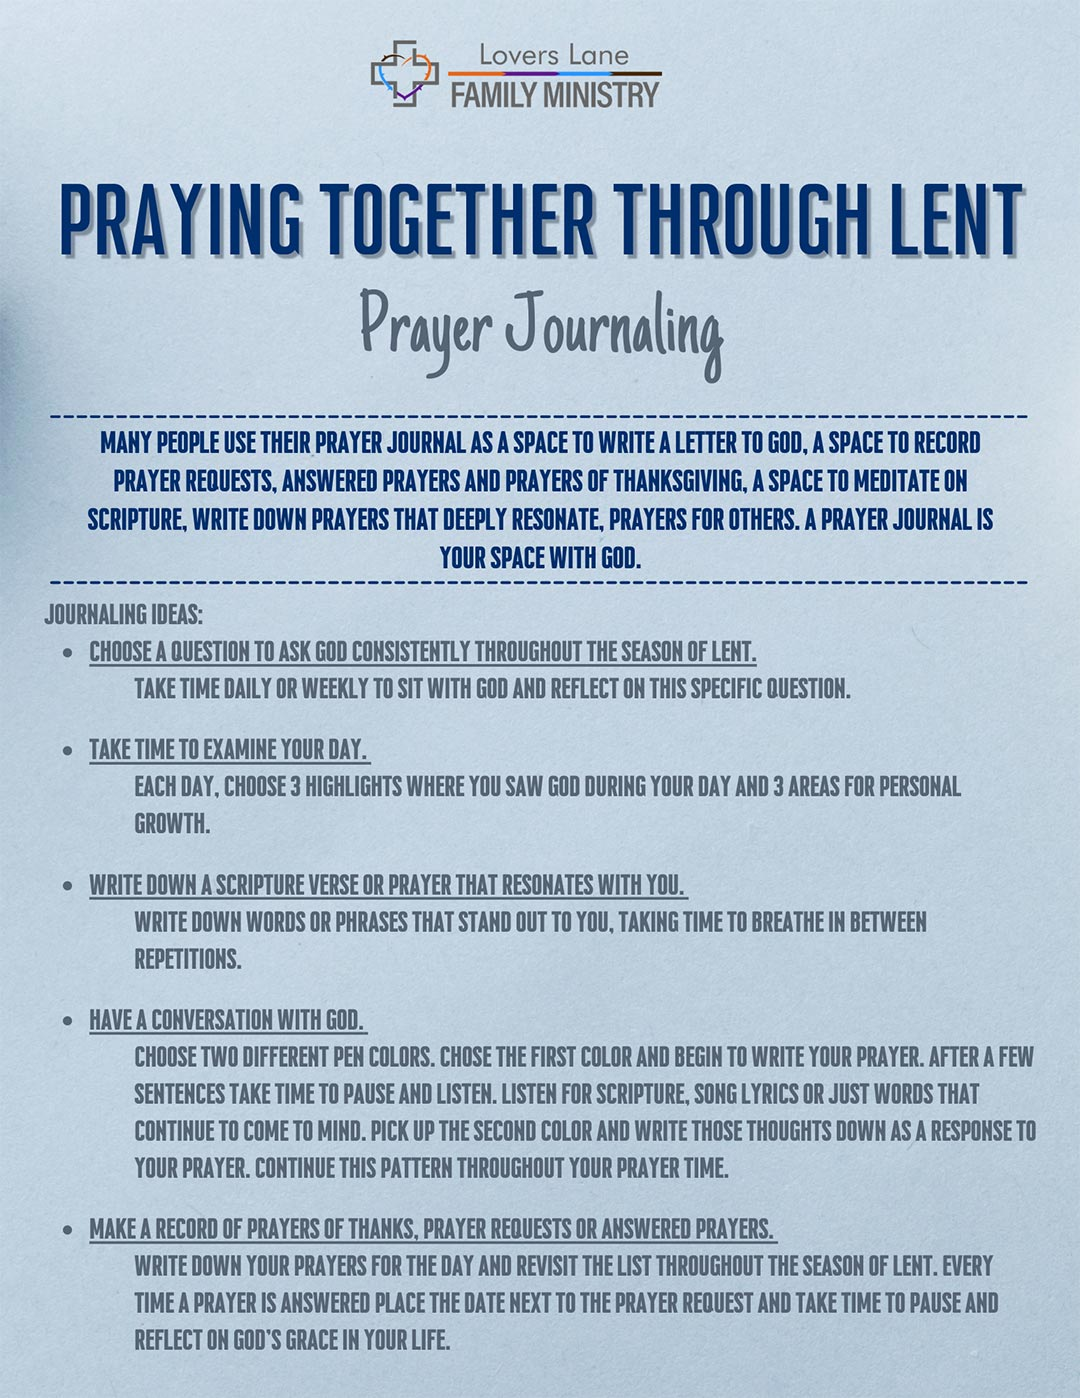 Prayer Journaling prompts